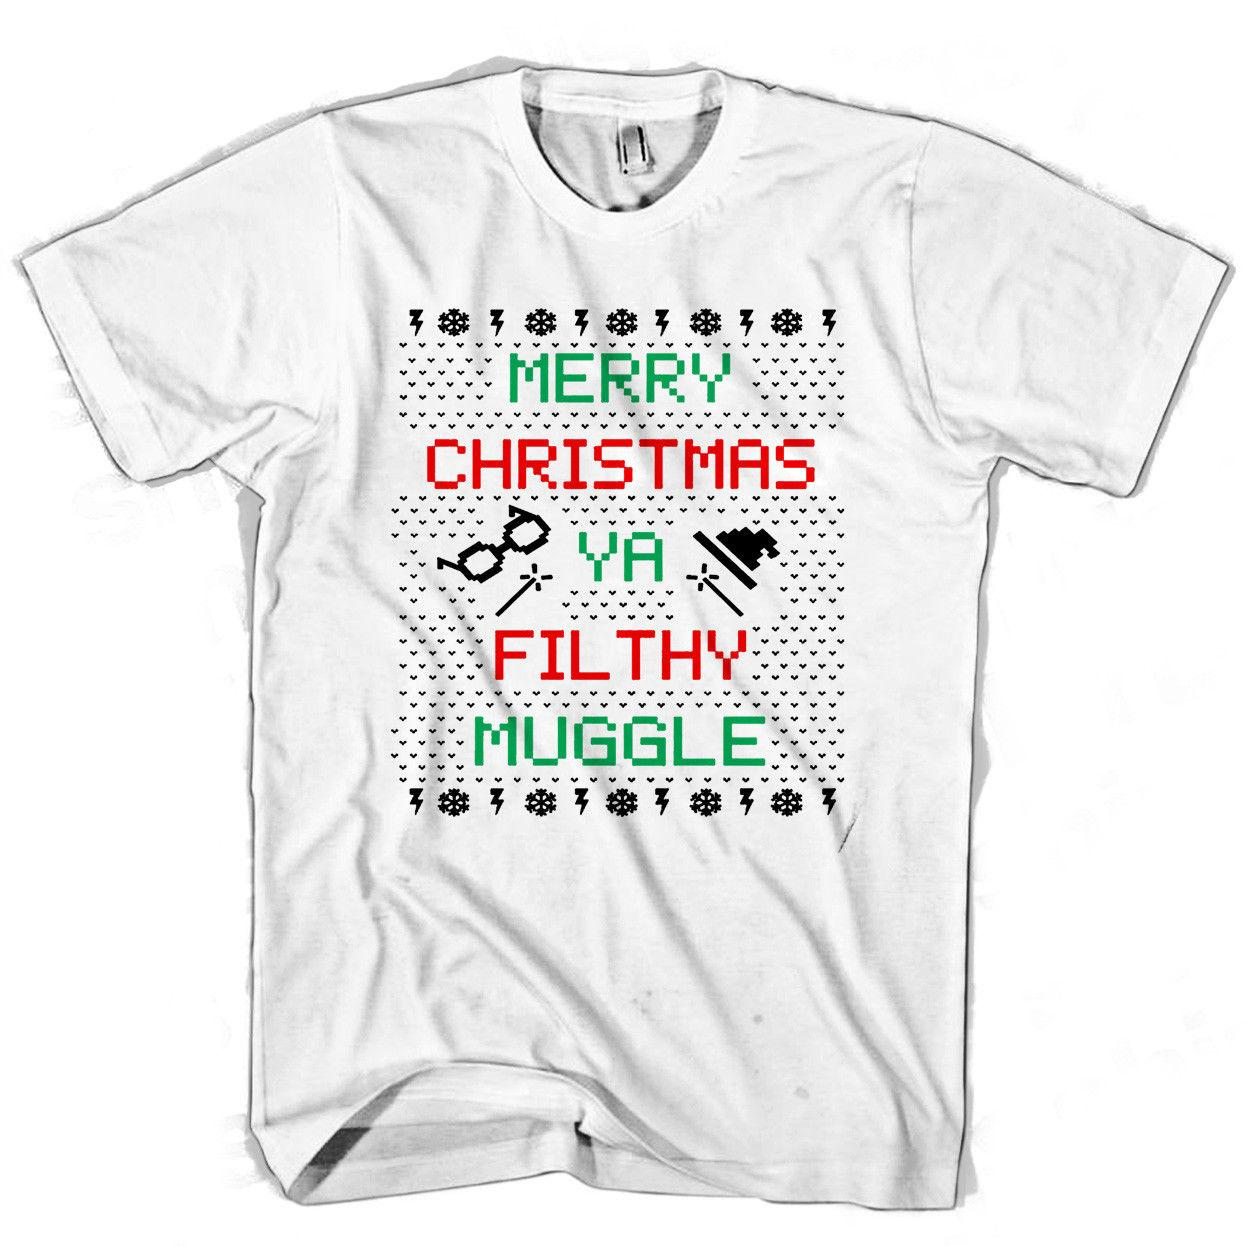 85419fdd Filthy Muggle Ugly Christmas T Shirt Cool Xxxtentacion Marcus And Martinus  Tshirt Discout Hot New Top T Shirt Cotton T Shirt Create T Shirts From  Tenlookcup ...